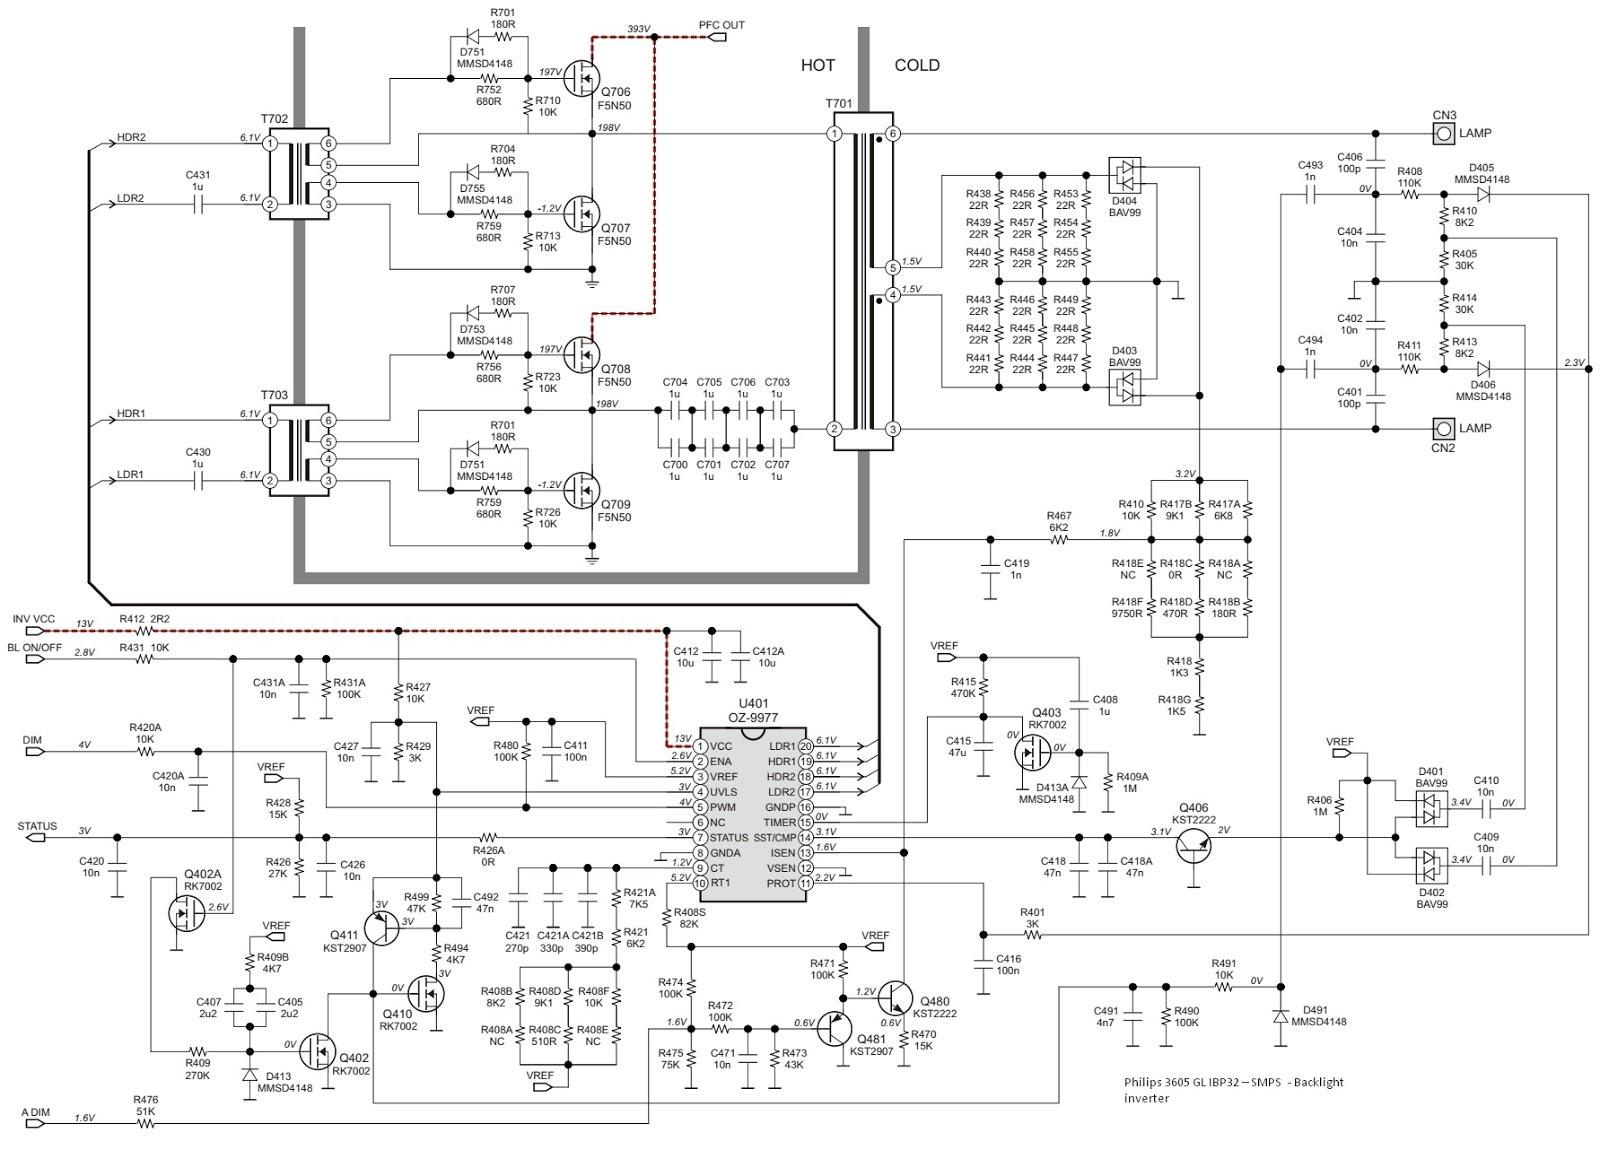 Schematic Diagrams: Philips 3605 GL IBP32 and LG LCD 08h3237 ... on